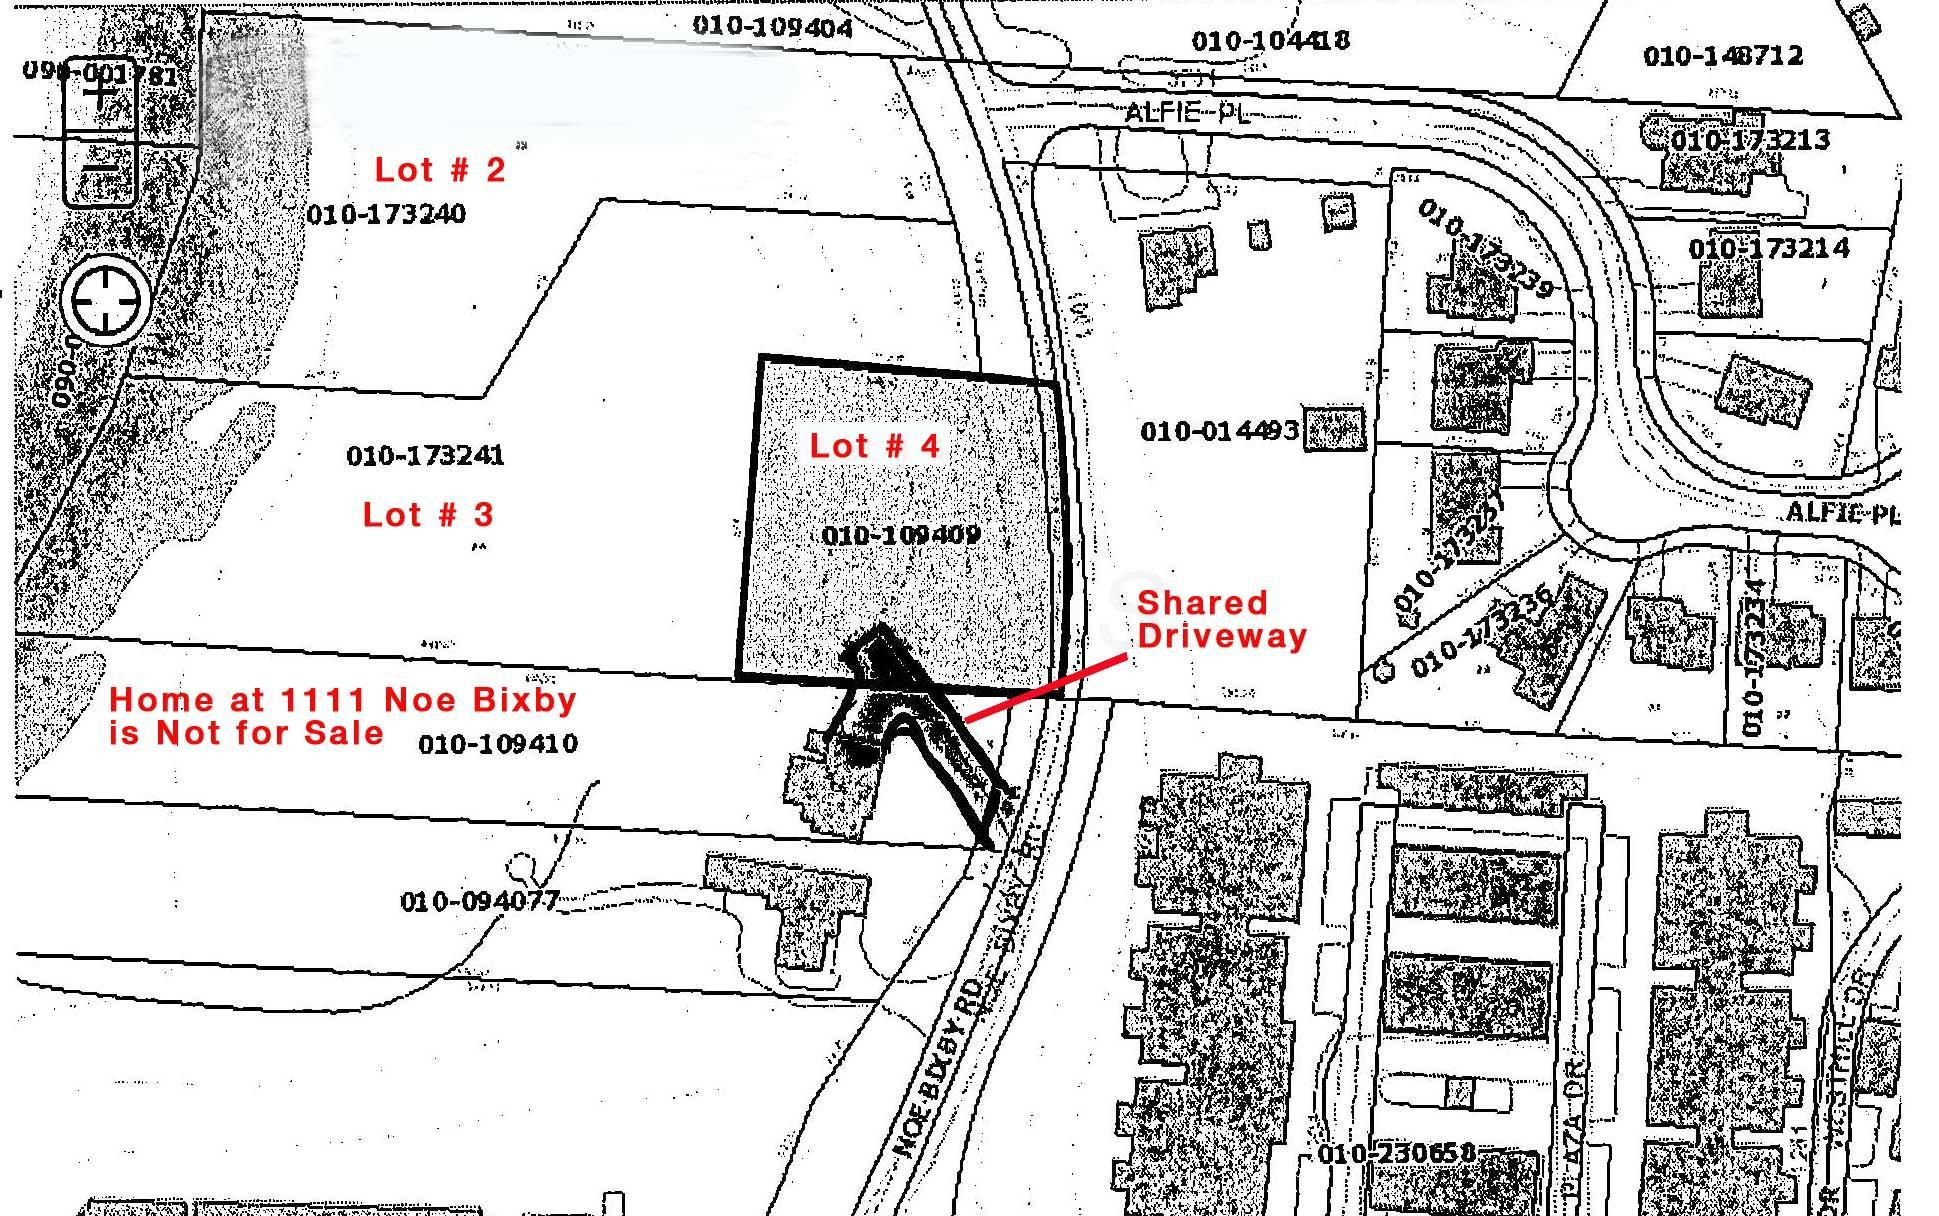 __map illustration showing shared drivew